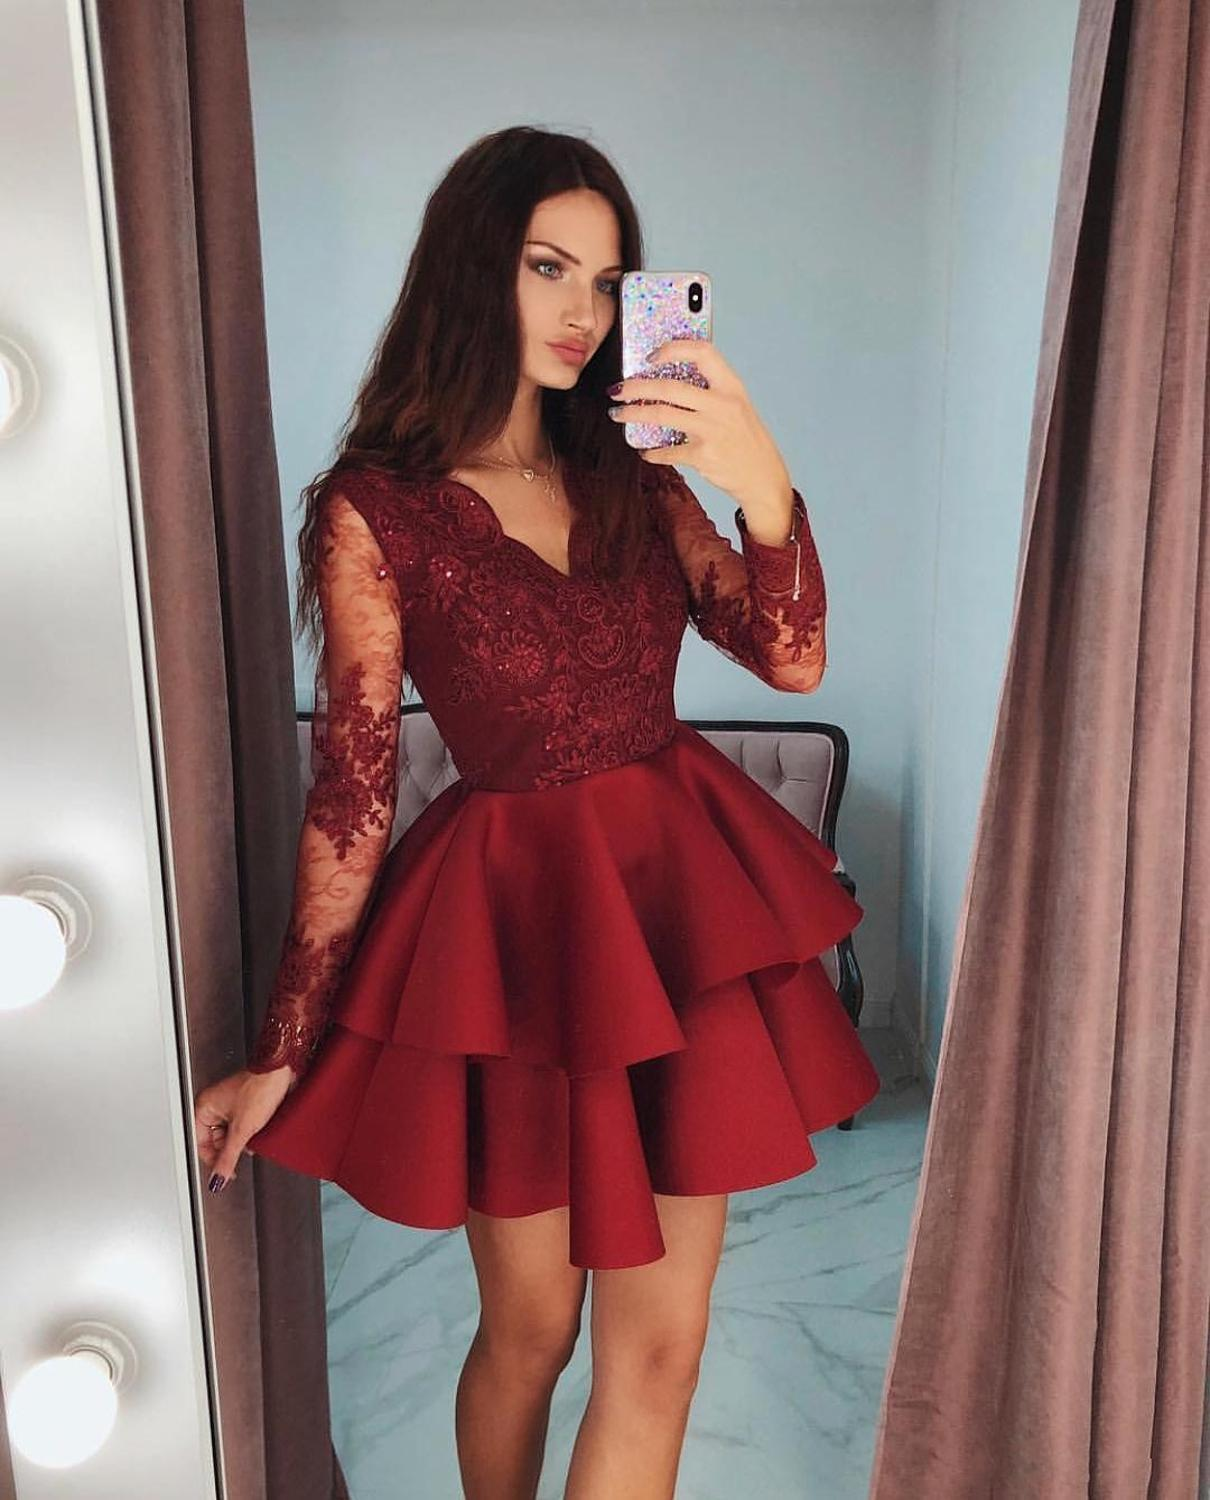 Fashion Celebrity Cocktail Dress Red V-Neck Long Sleeve Homecoming Dresses Stylish Tiered Lace Applique Short Prom Dress